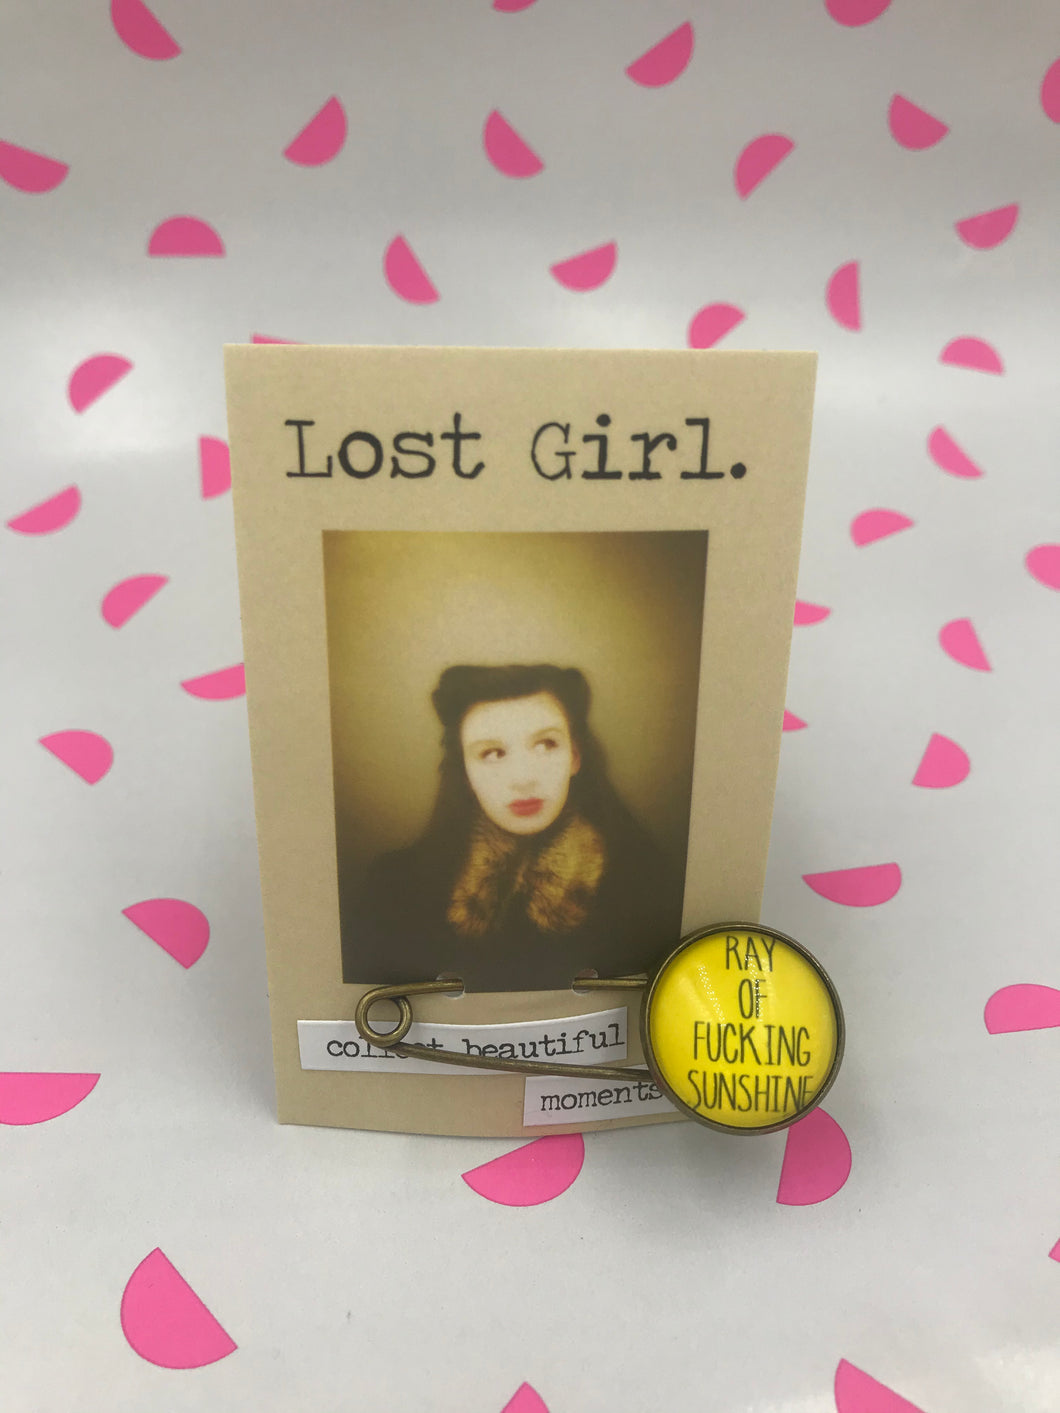 Lost Girl Pins - Ray of F***ing Sunshine